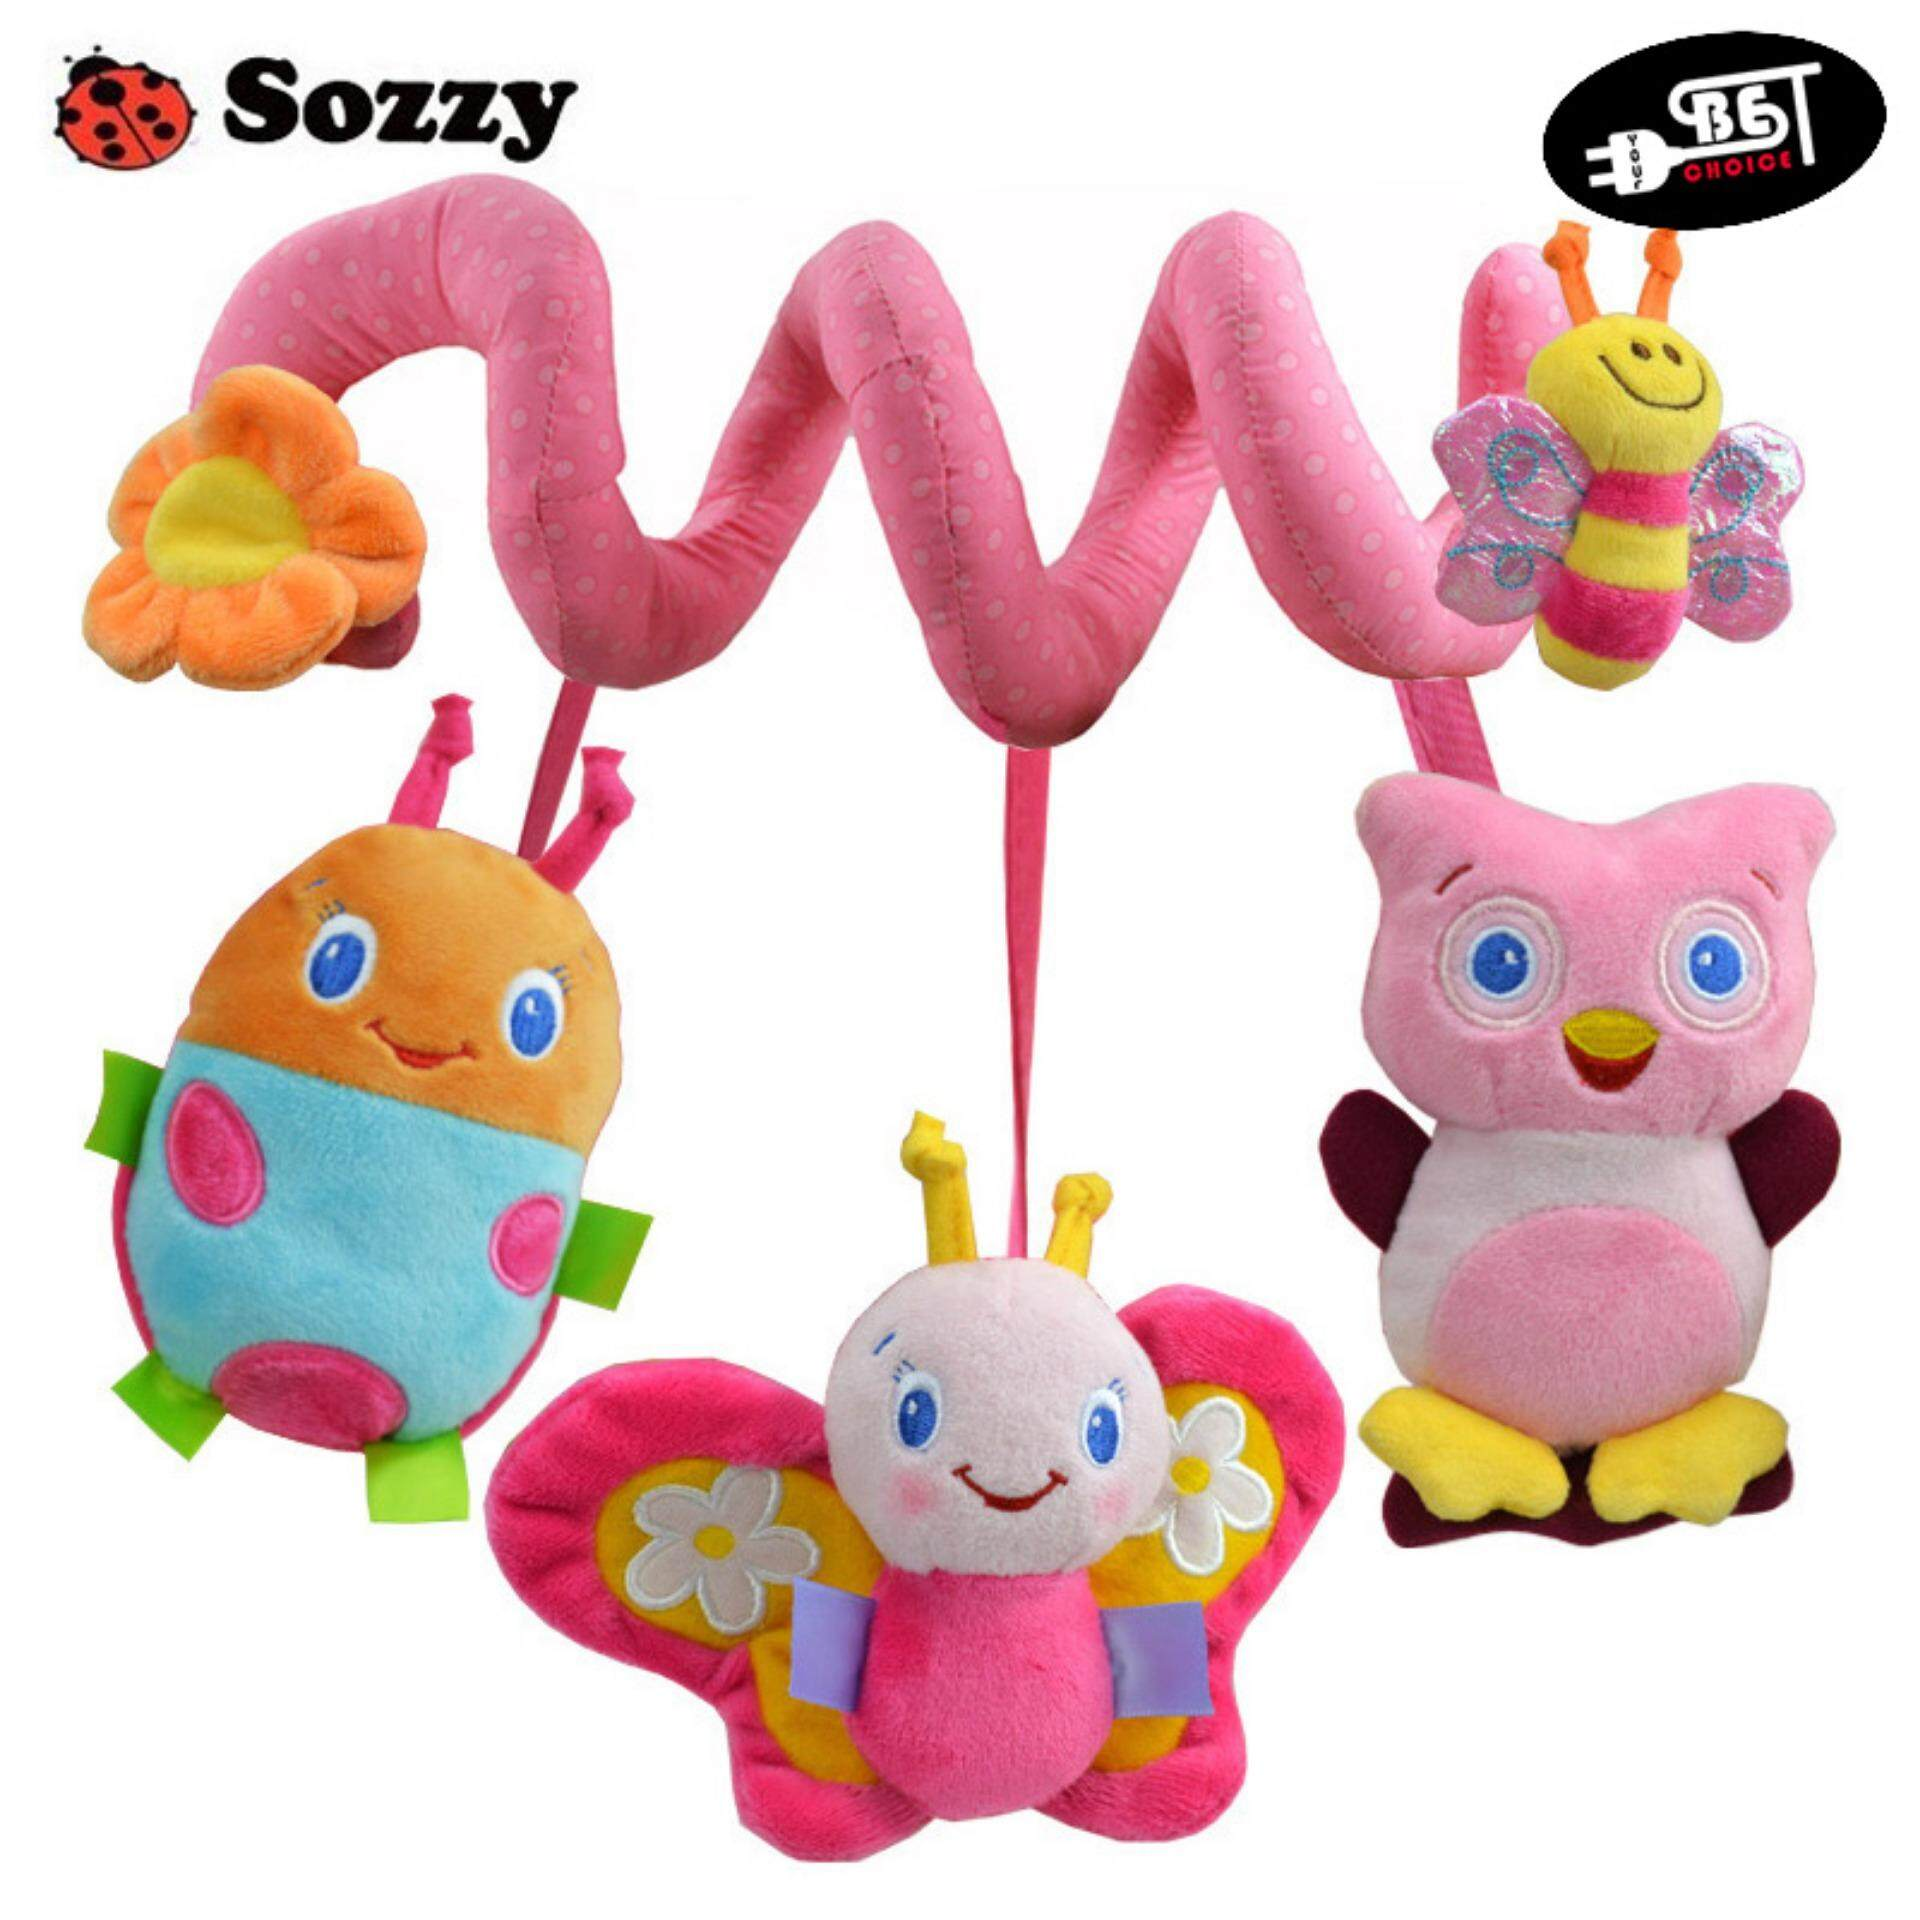 Detail Gambar YBC Infant Toys Baby Crib Revolves Stroller Playing Toy Car Lathe Hanging Baby Rattles Terbaru